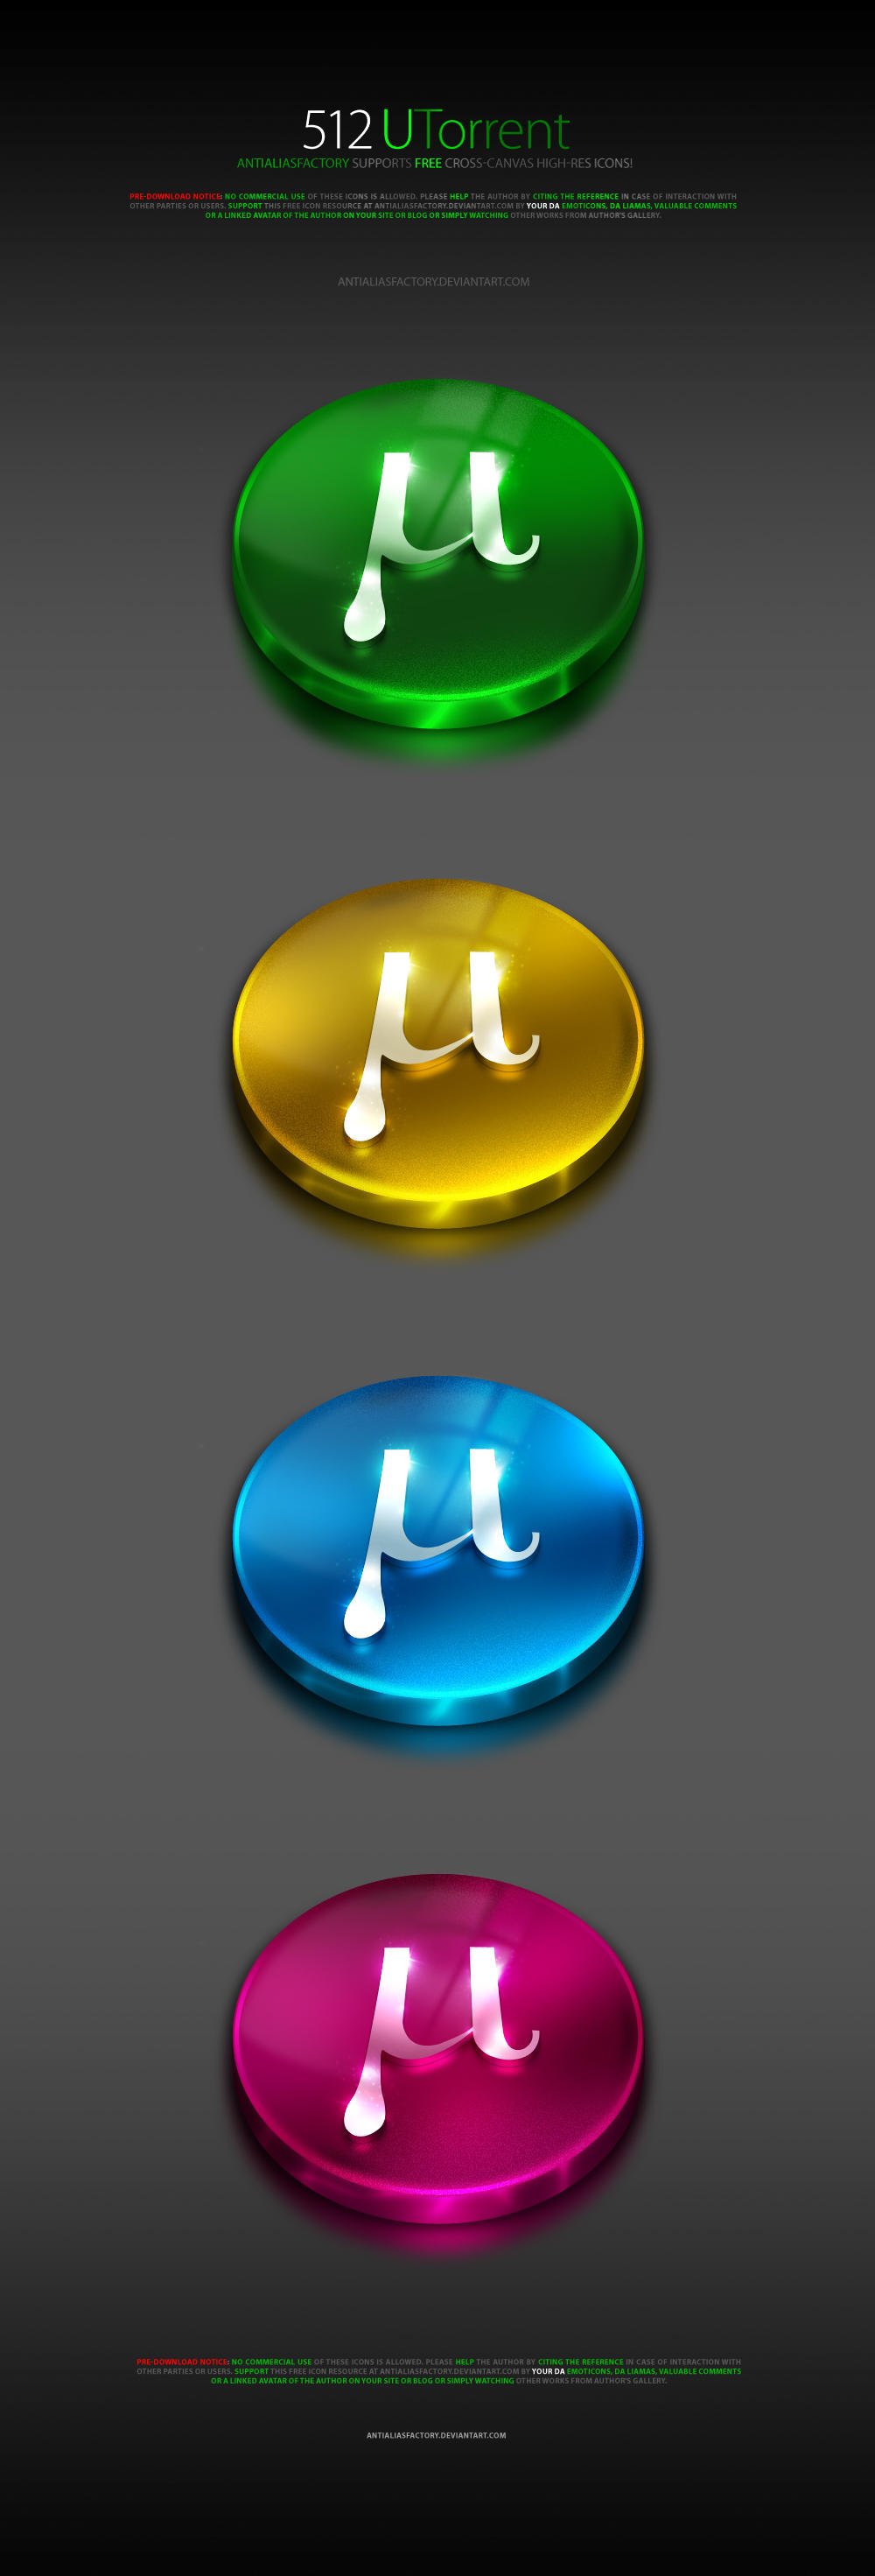 512 uTorrent icon by antialiasfactory